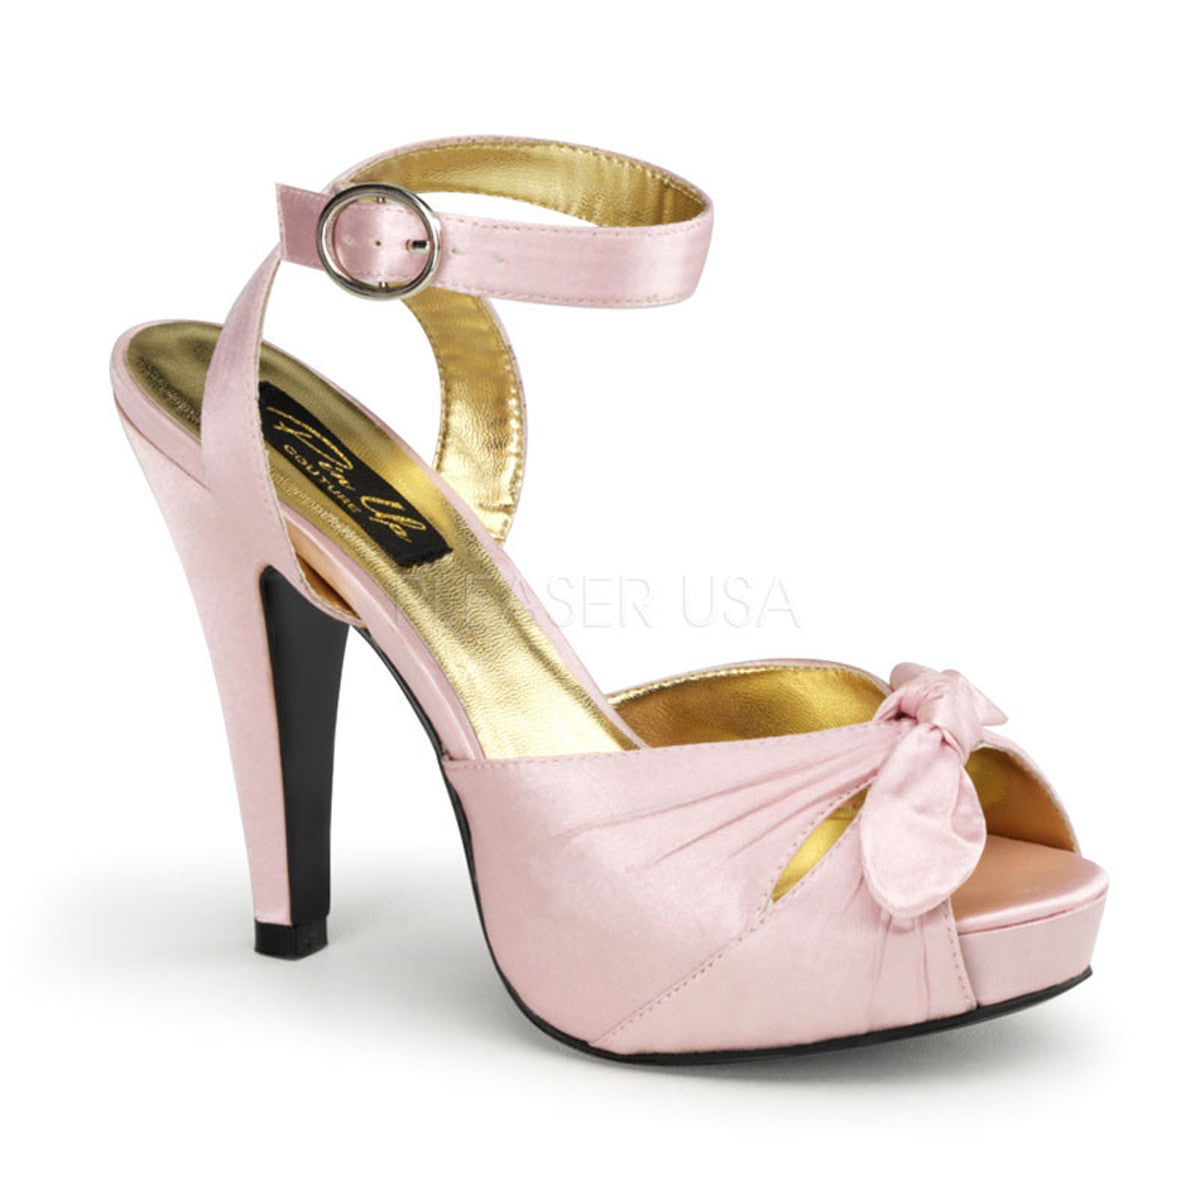 Pin Up Couture BETTIE-04 Baby Pink Satin Peep Toe Sandals - Shoecup.com - 1